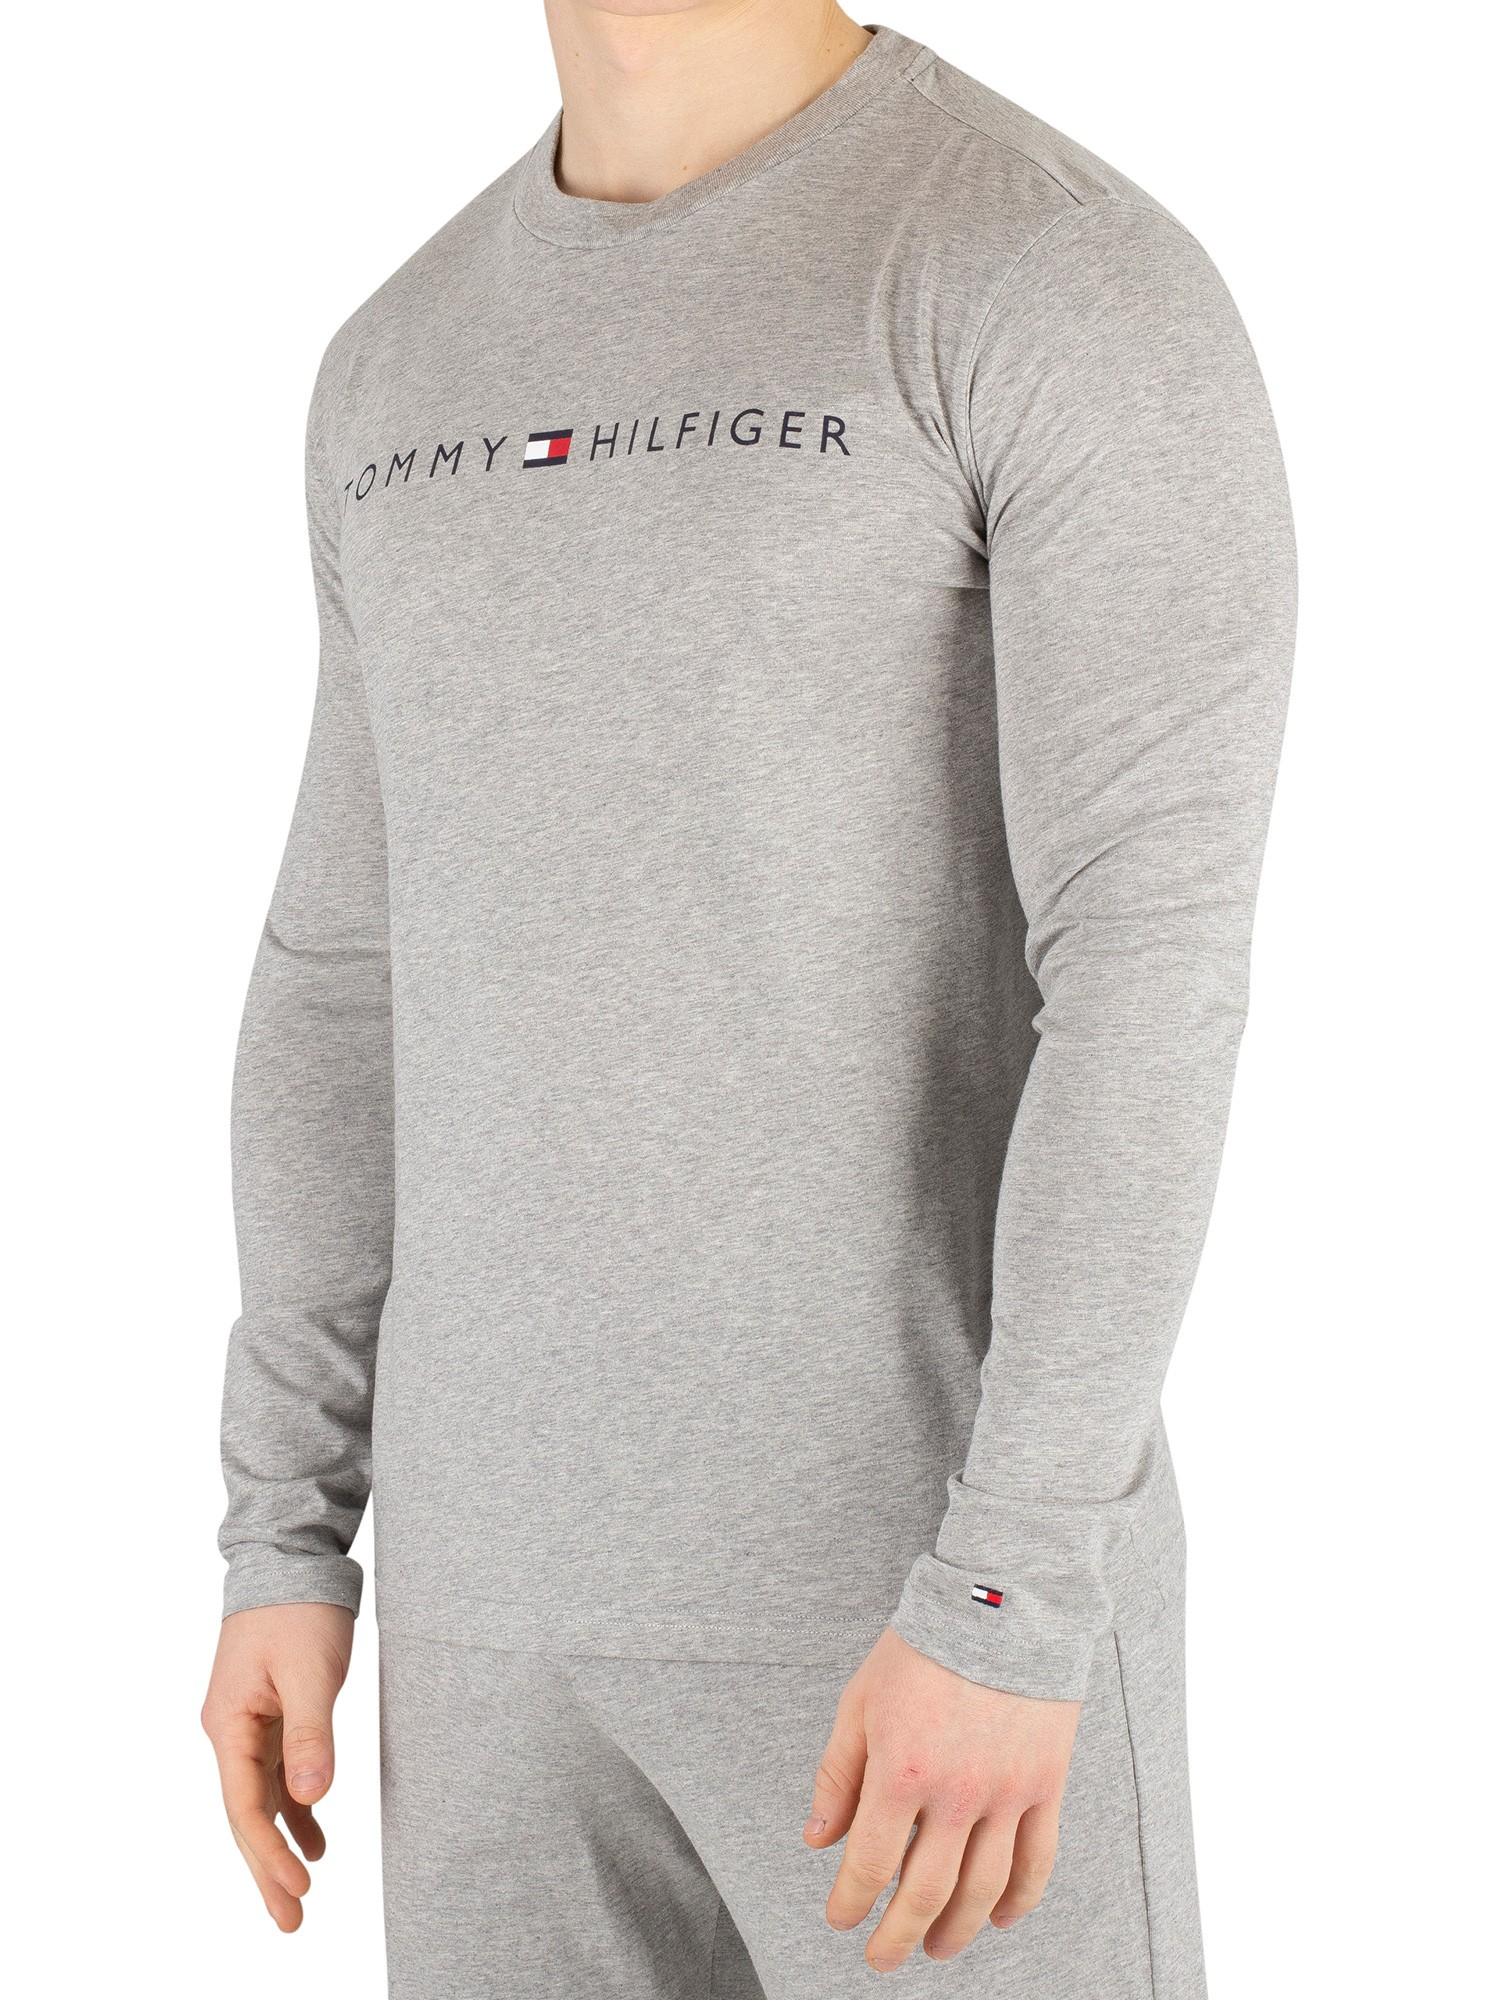 9ce21241 Hilfiger Polo Shirts Sale Uk – EDGE Engineering and Consulting Limited